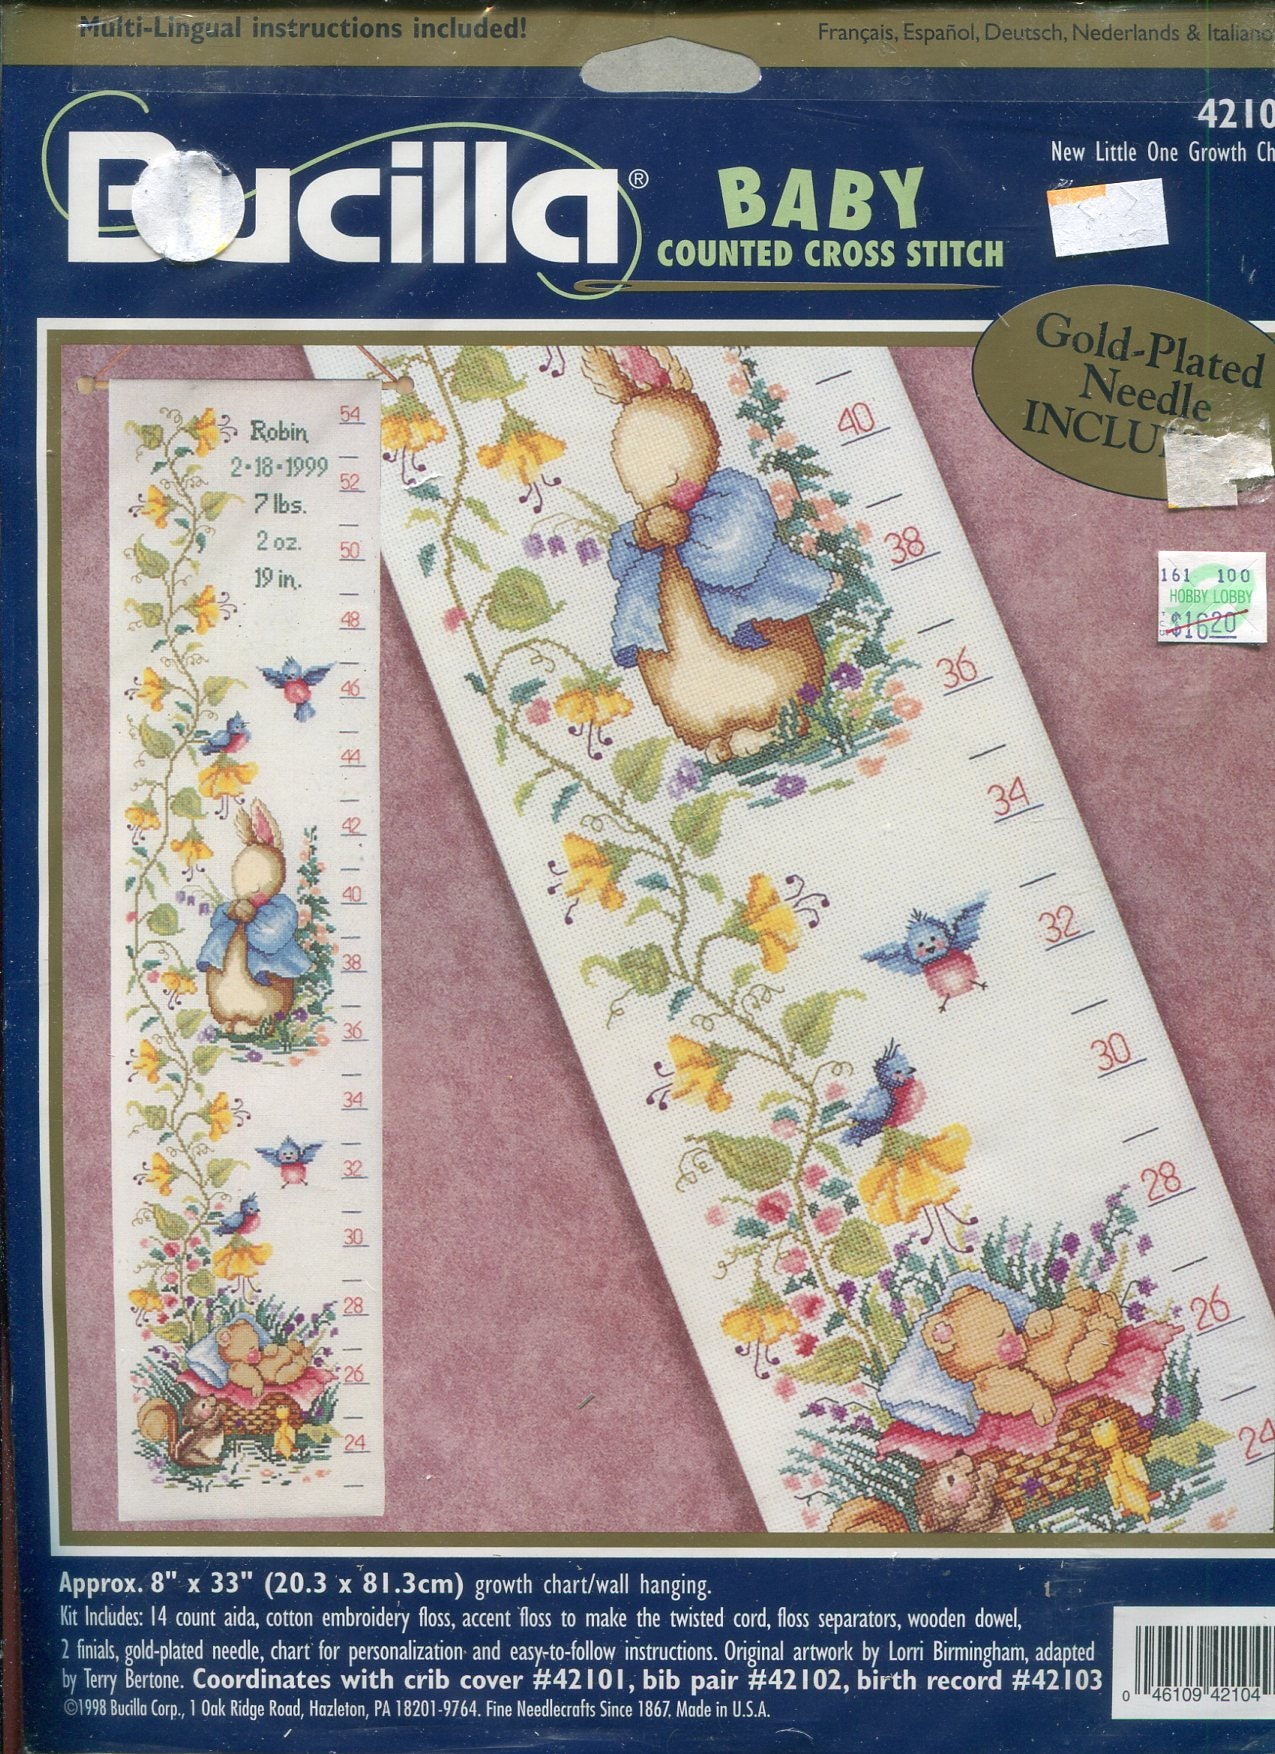 New little one growth chart 8 x 33 counted cross stitch kit bucilla sold by pengypatterns geenschuldenfo Choice Image